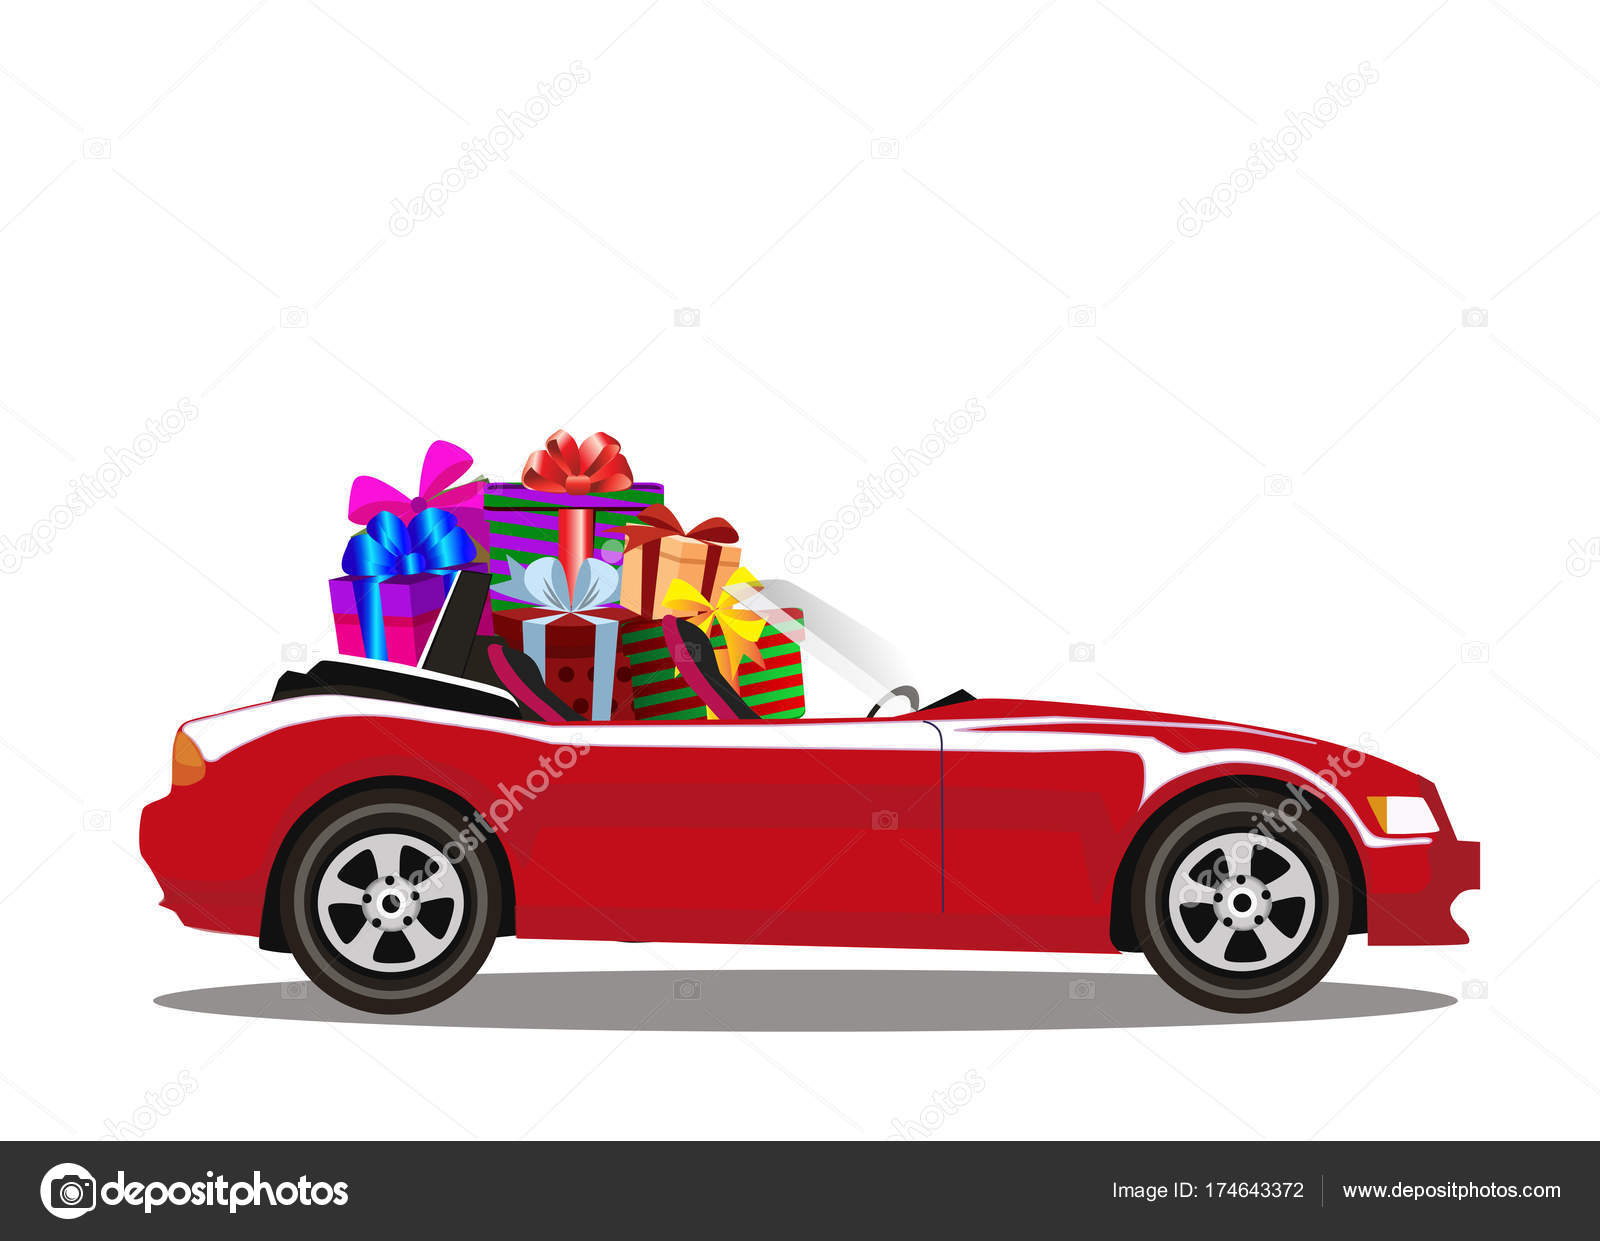 Red Modern Cartoon Cabriolet Car Full Of Gift Boxes Isolated On Stock Vector C Katarepsius 174643372